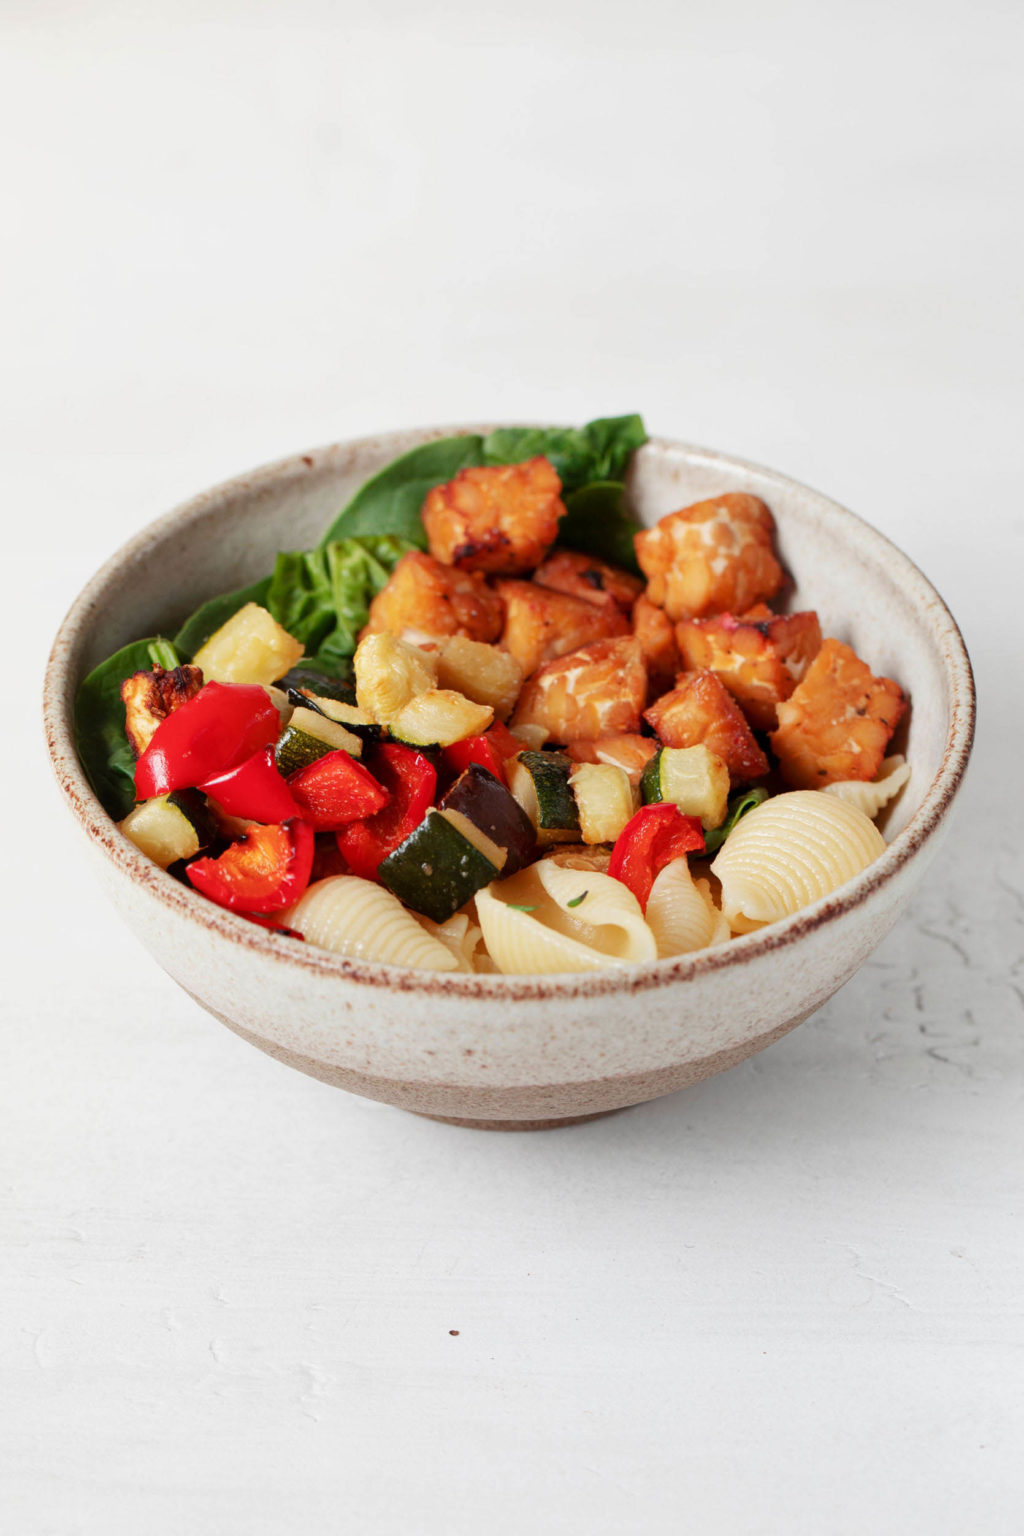 A small, white and beige bowl is resting on a white surface. The bowl is filled with cooked pasta and colorful mix-ins.